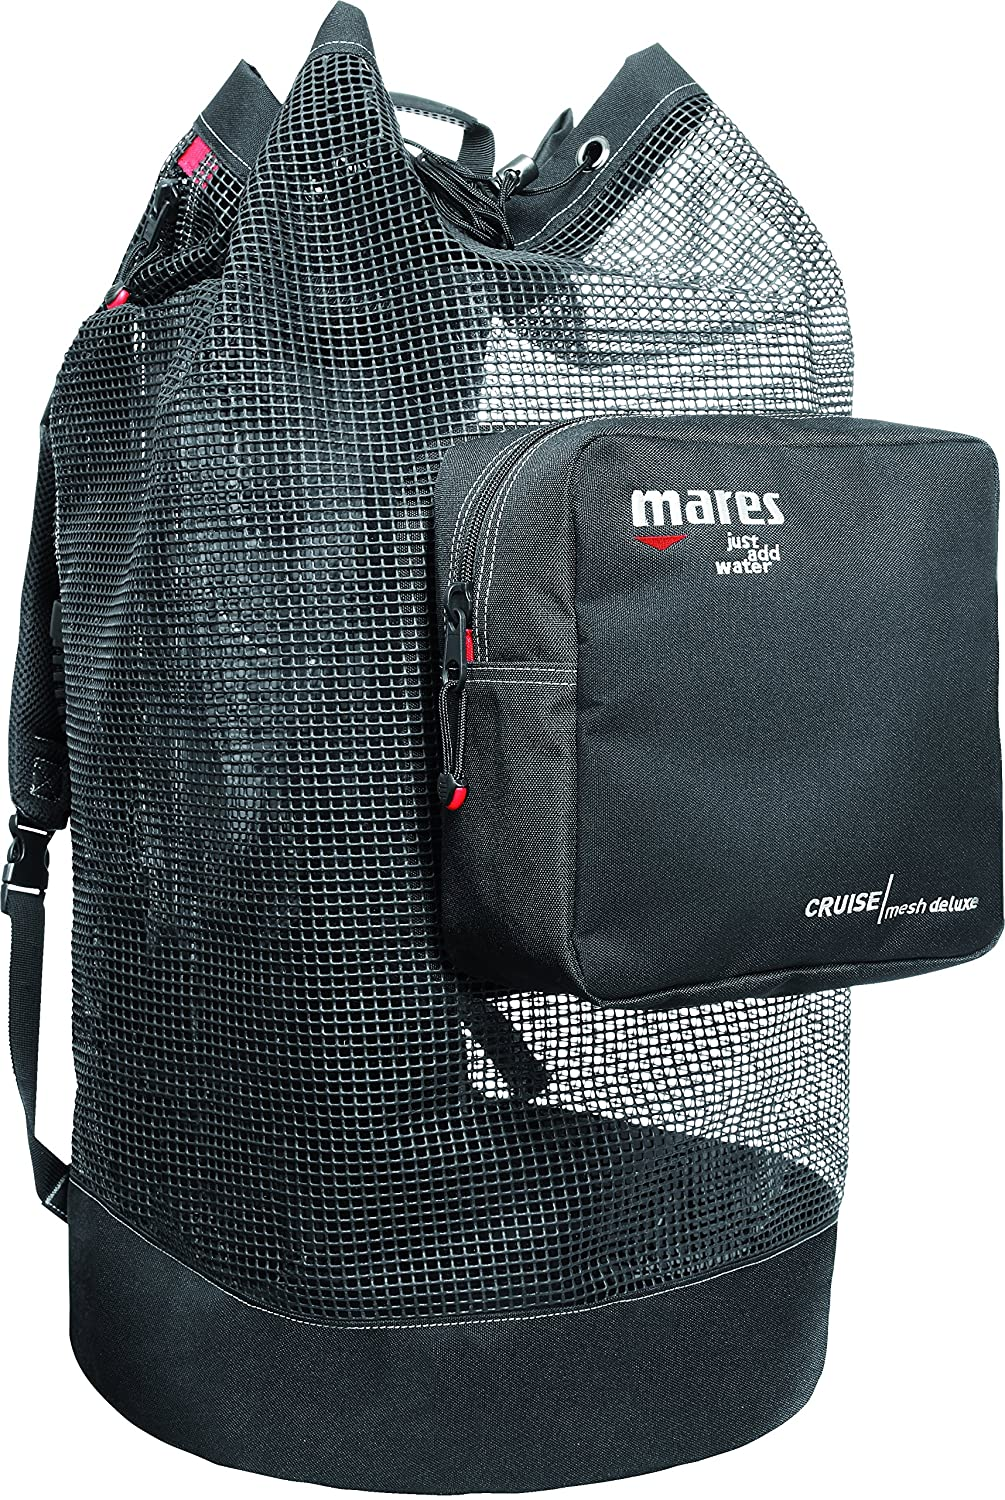 Mares cruise mesh scuba diving deluxe backpack ebay - Mares dive bag ...